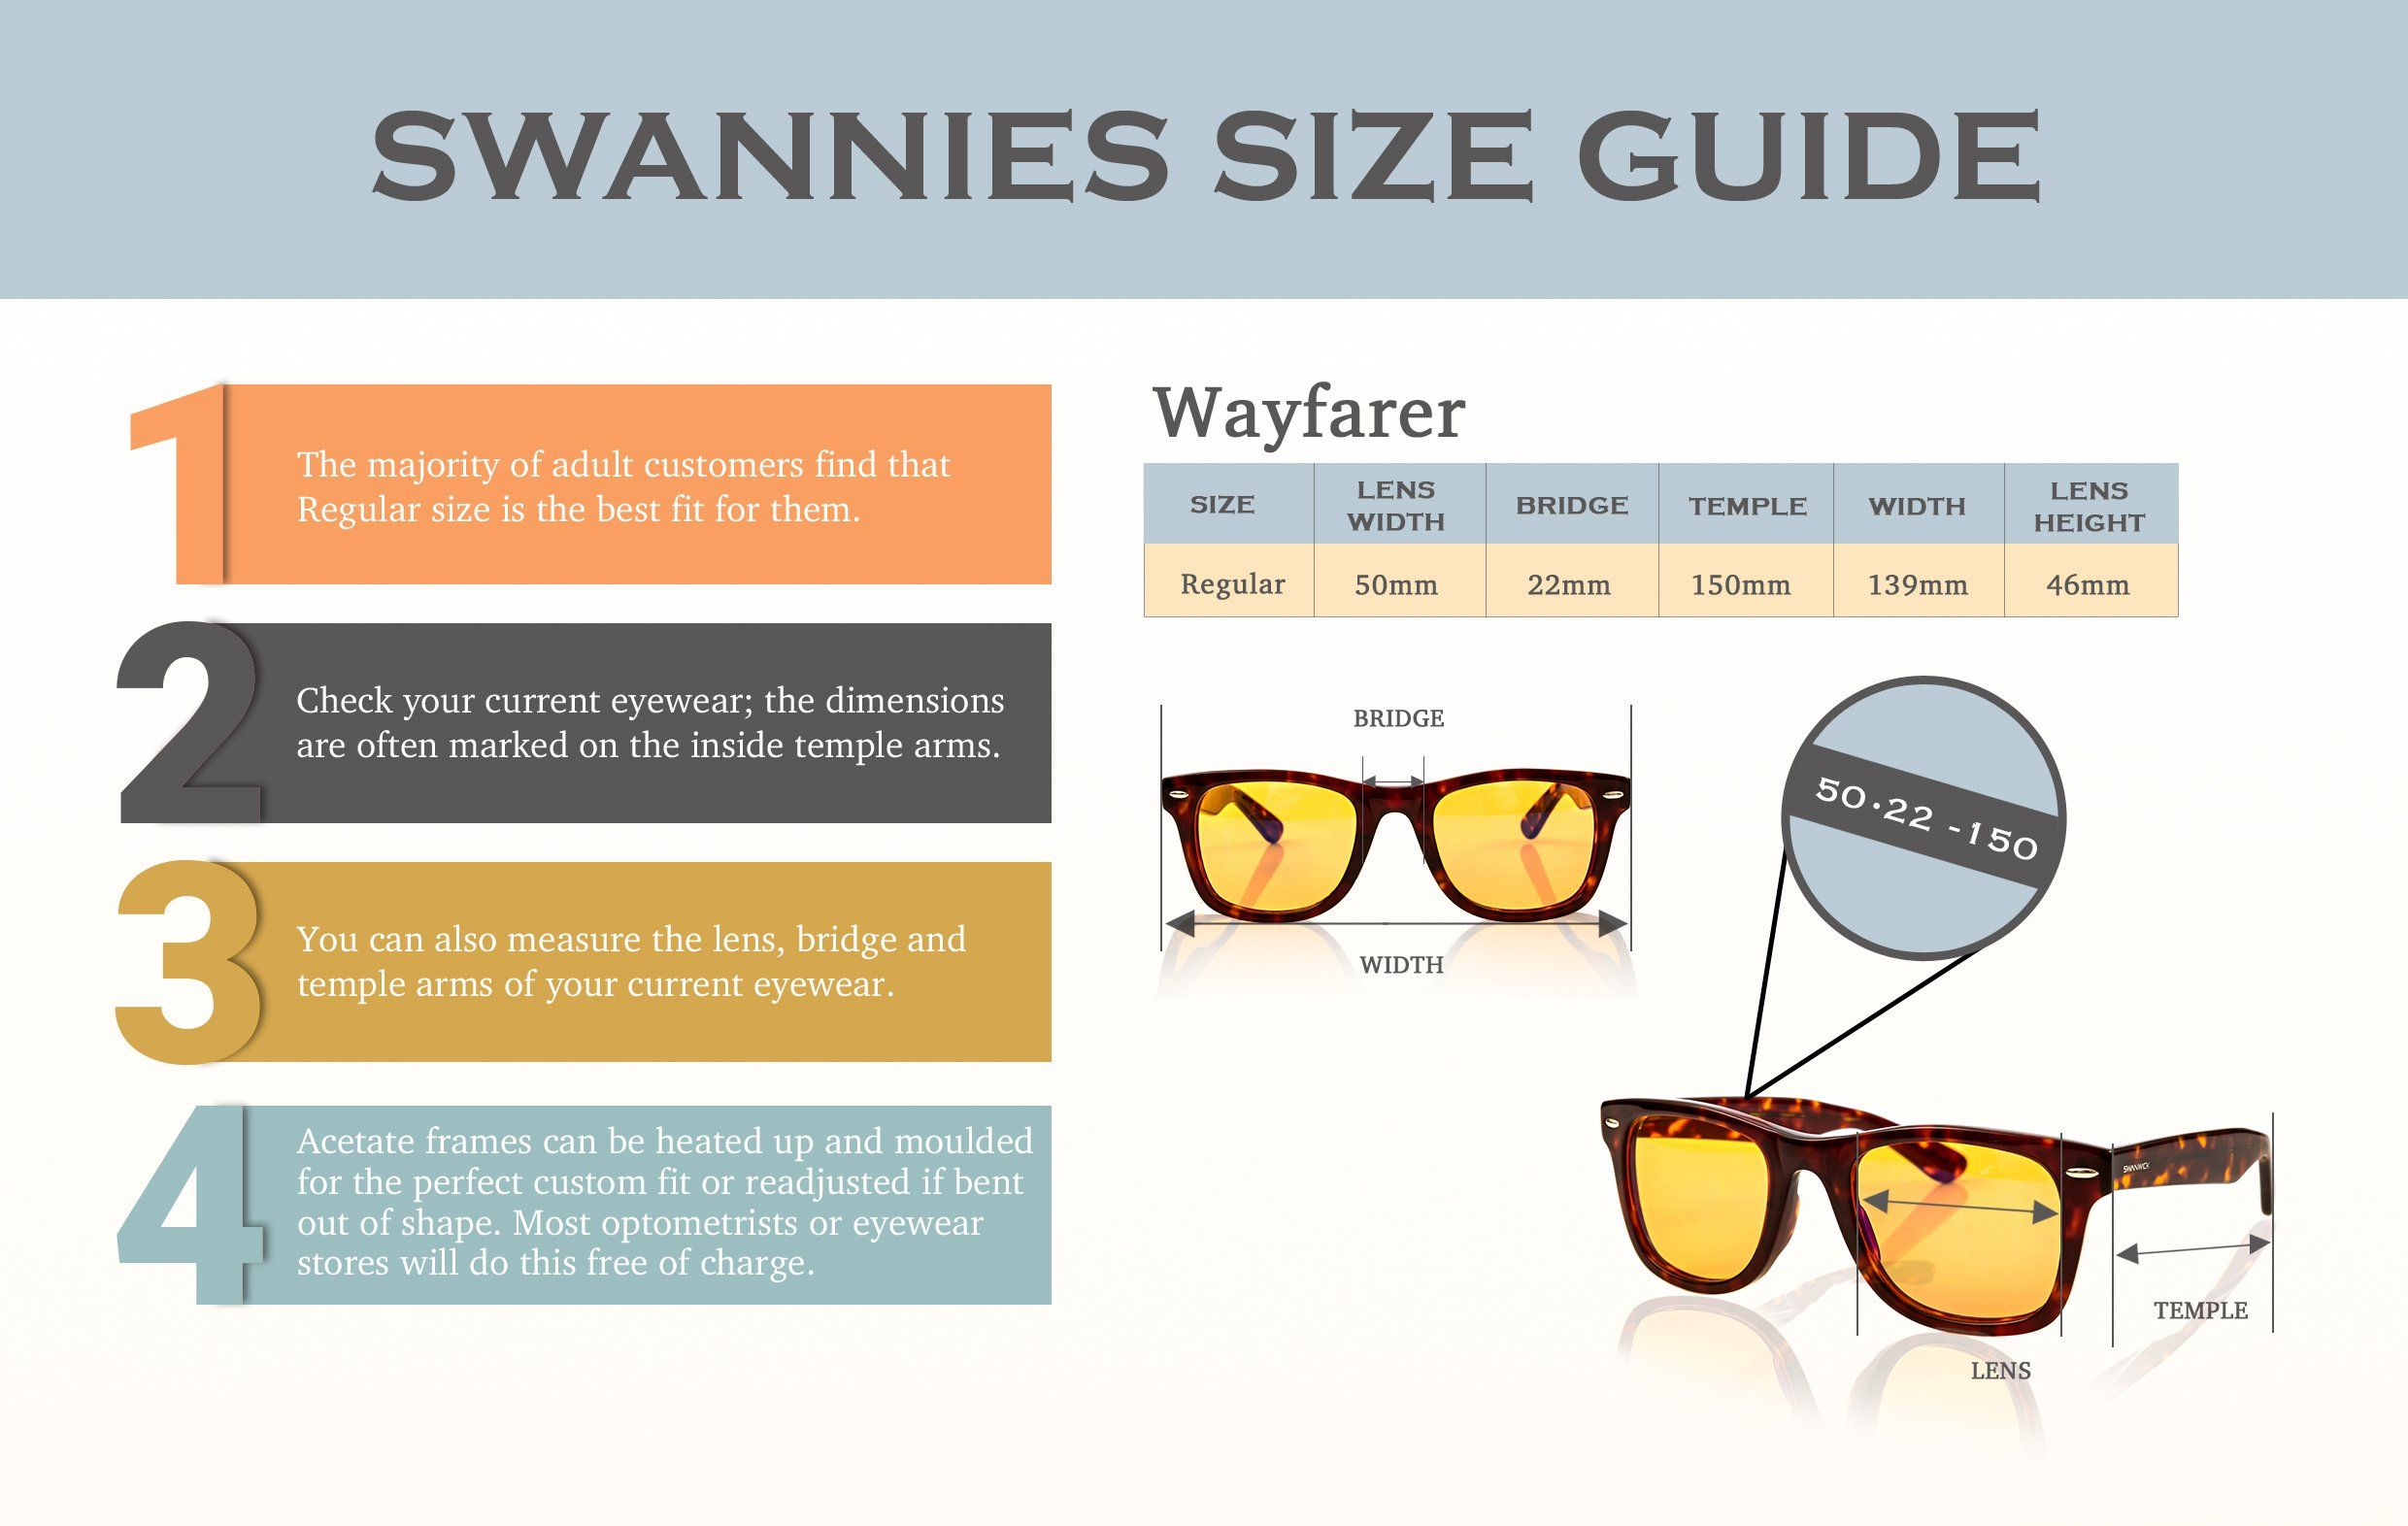 d7a2e9623d Order Swannies Blue Light Blocking Glasses Today! – Swanwick Sleep ...